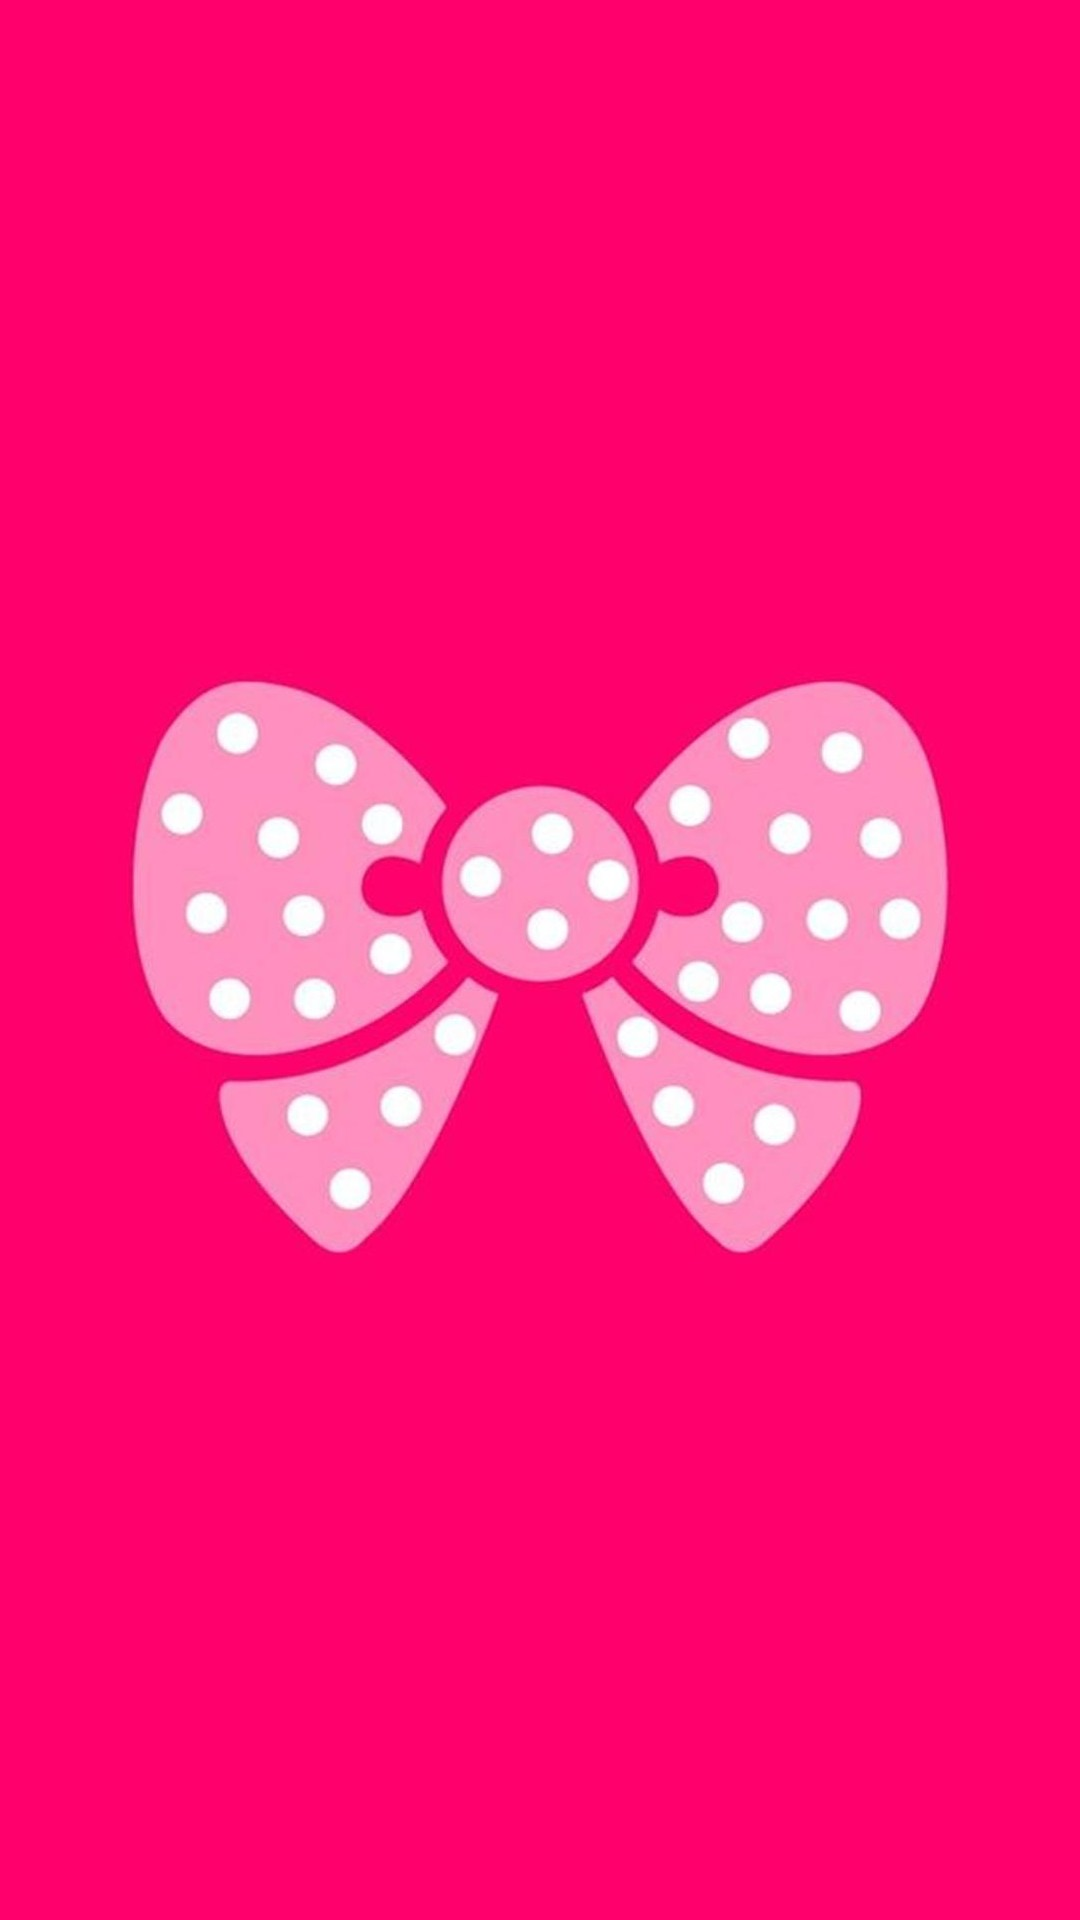 Iphone 5 wallpaper tumblr girly pink - 50 Best Samsung Galaxy S4 Wallpapers Page 2 Tech Brij